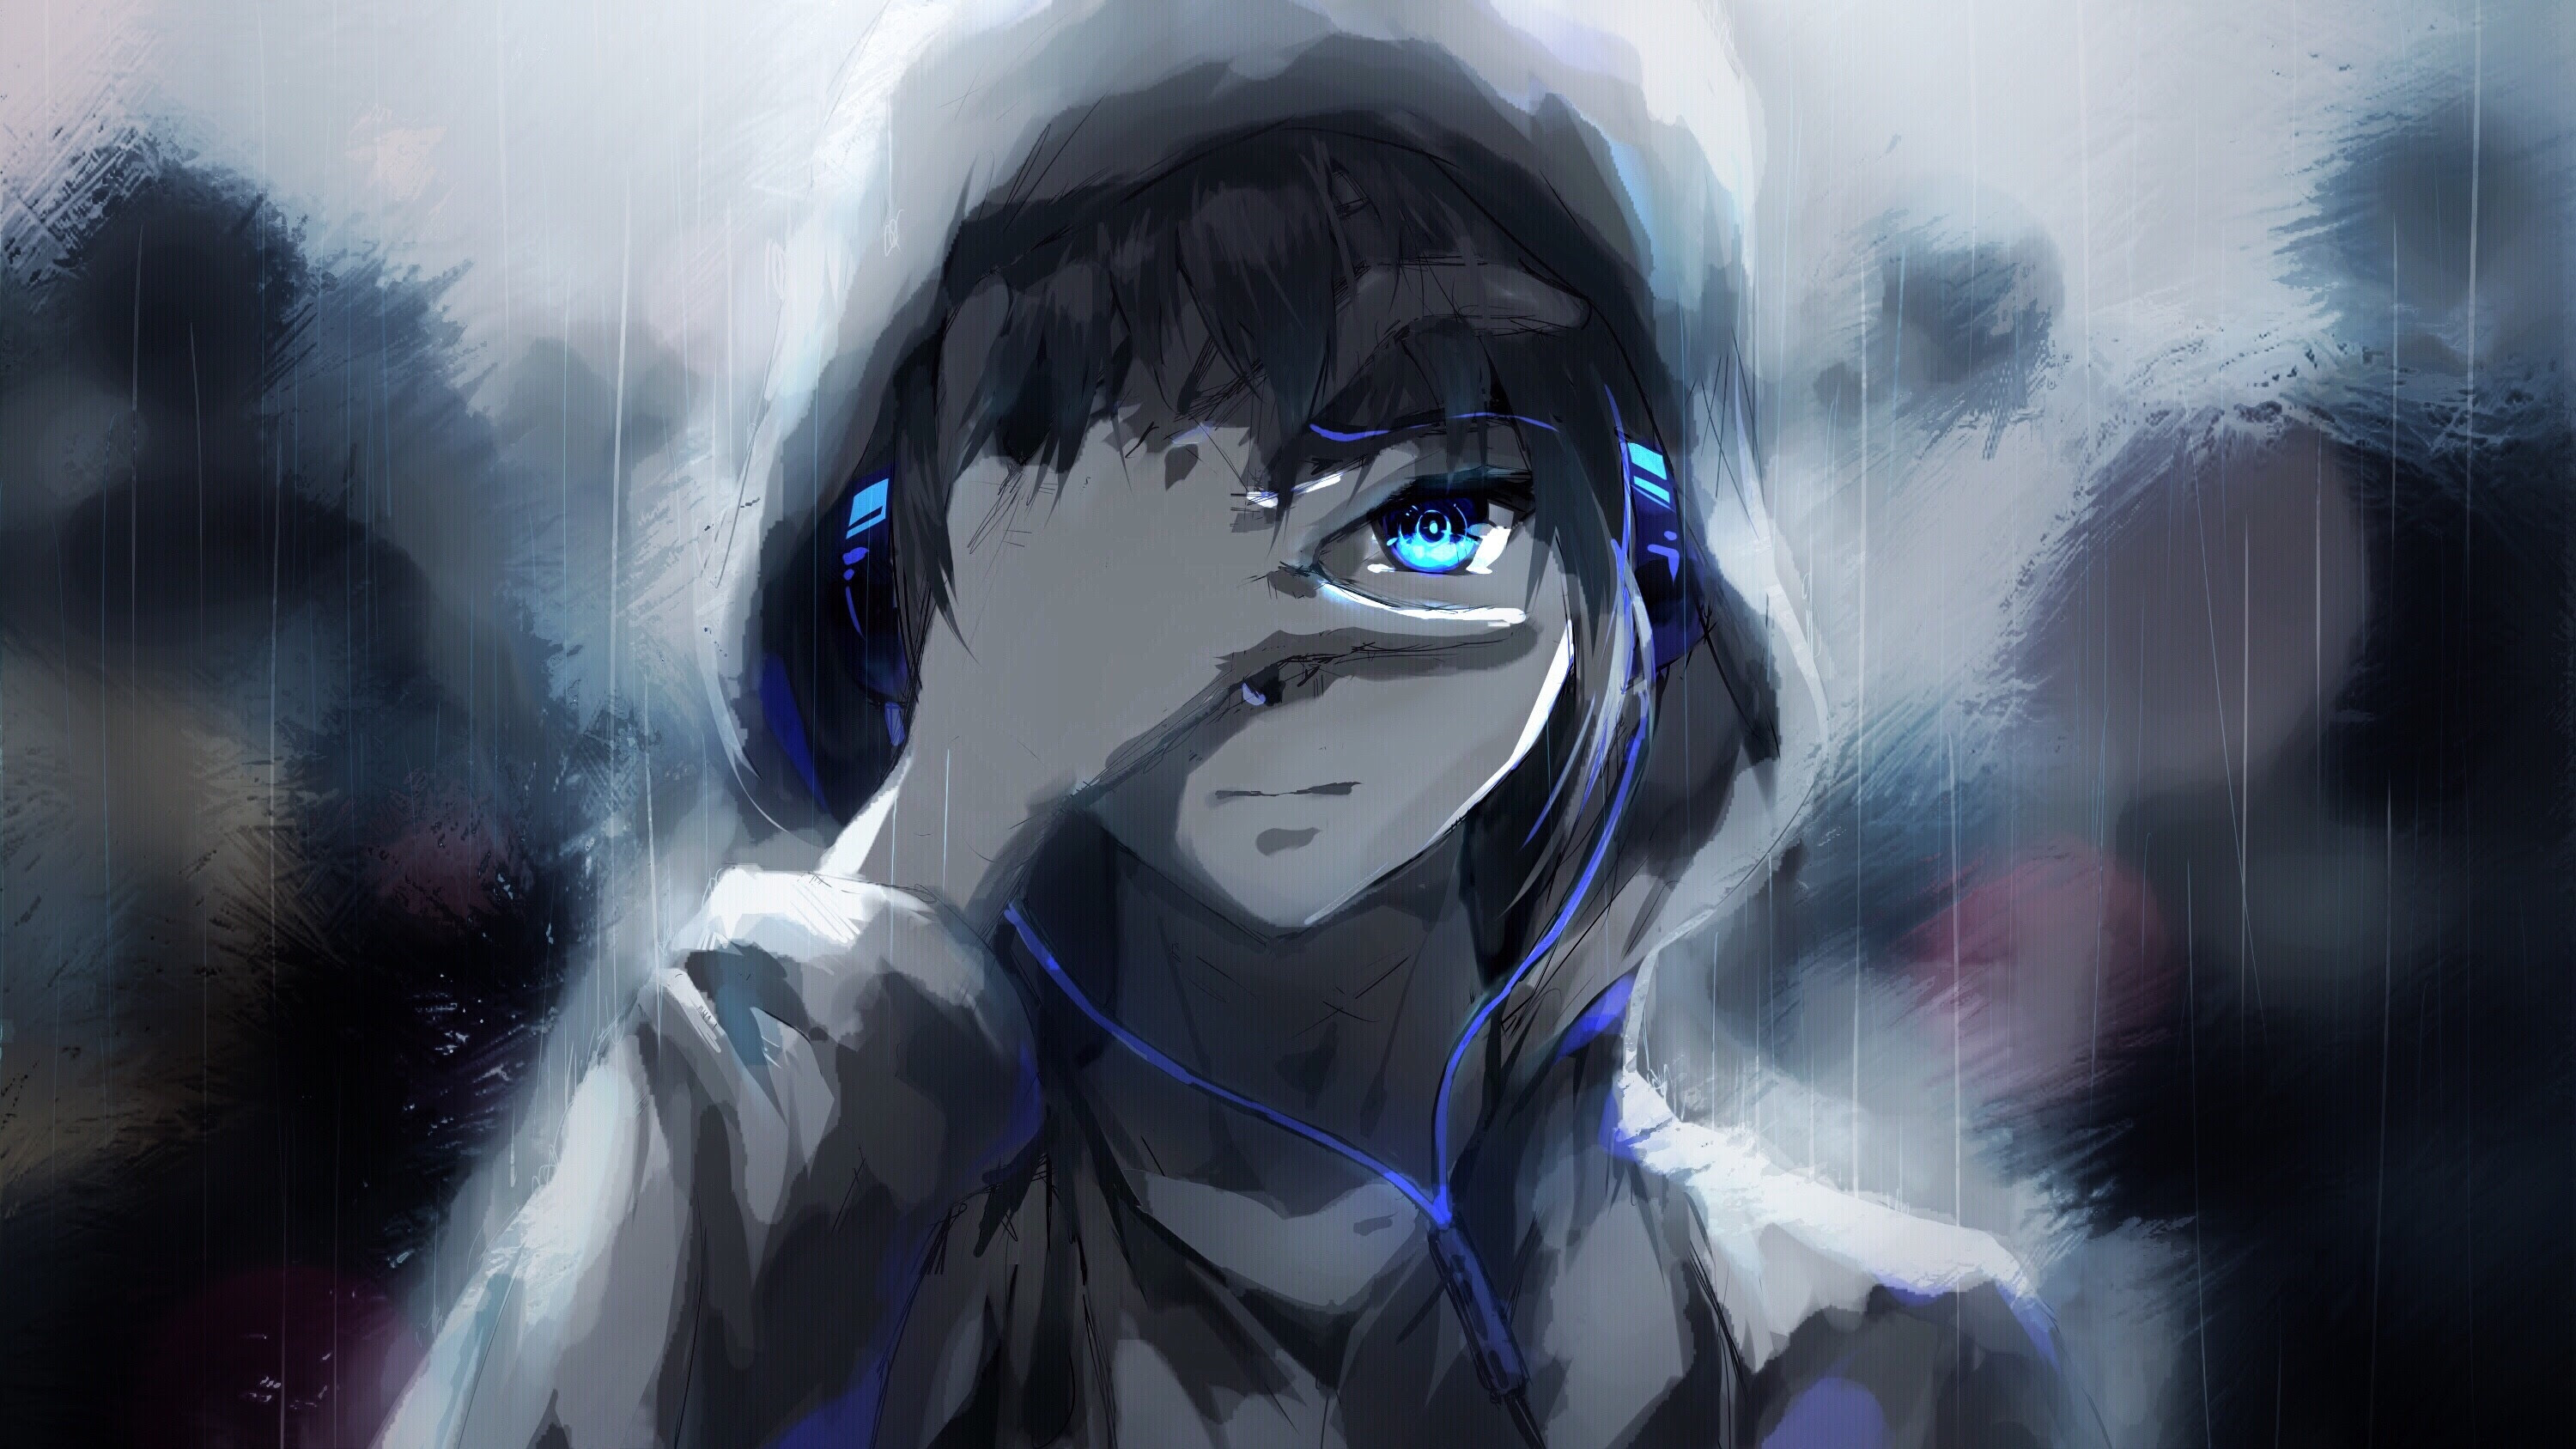 Download 1920x1080 Anime Boy, Hoodie, Blue Eyes, Headphones, Painting Wallpapers for Widescreen ...